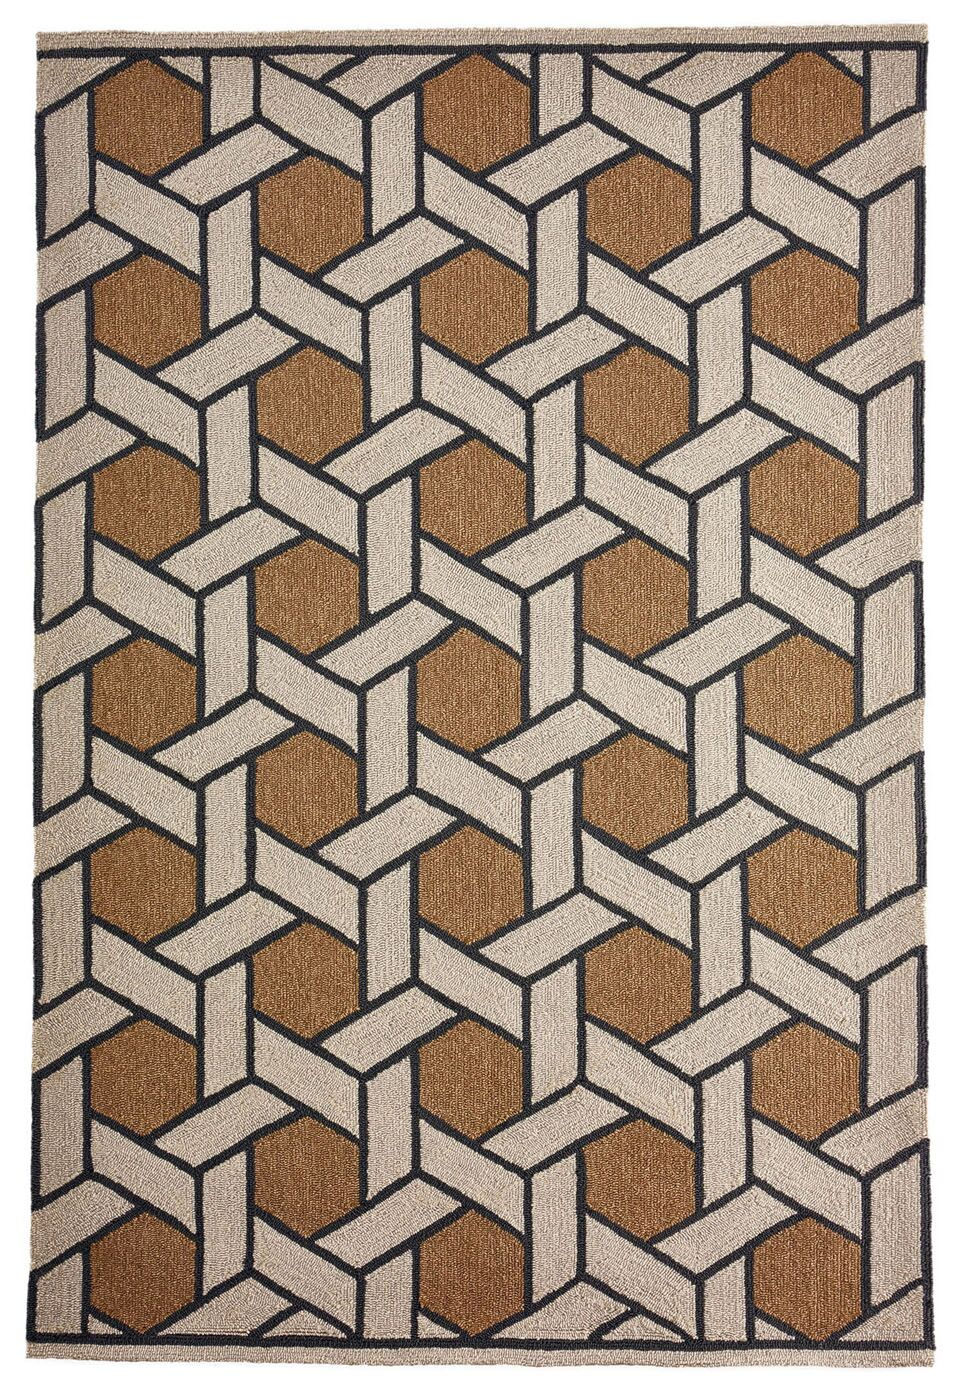 Enoch Basket Hand-Woven Camel/Light Gray Indoor/Outdoor Area Rug Rug Size: Rectangle 5' x 7'6